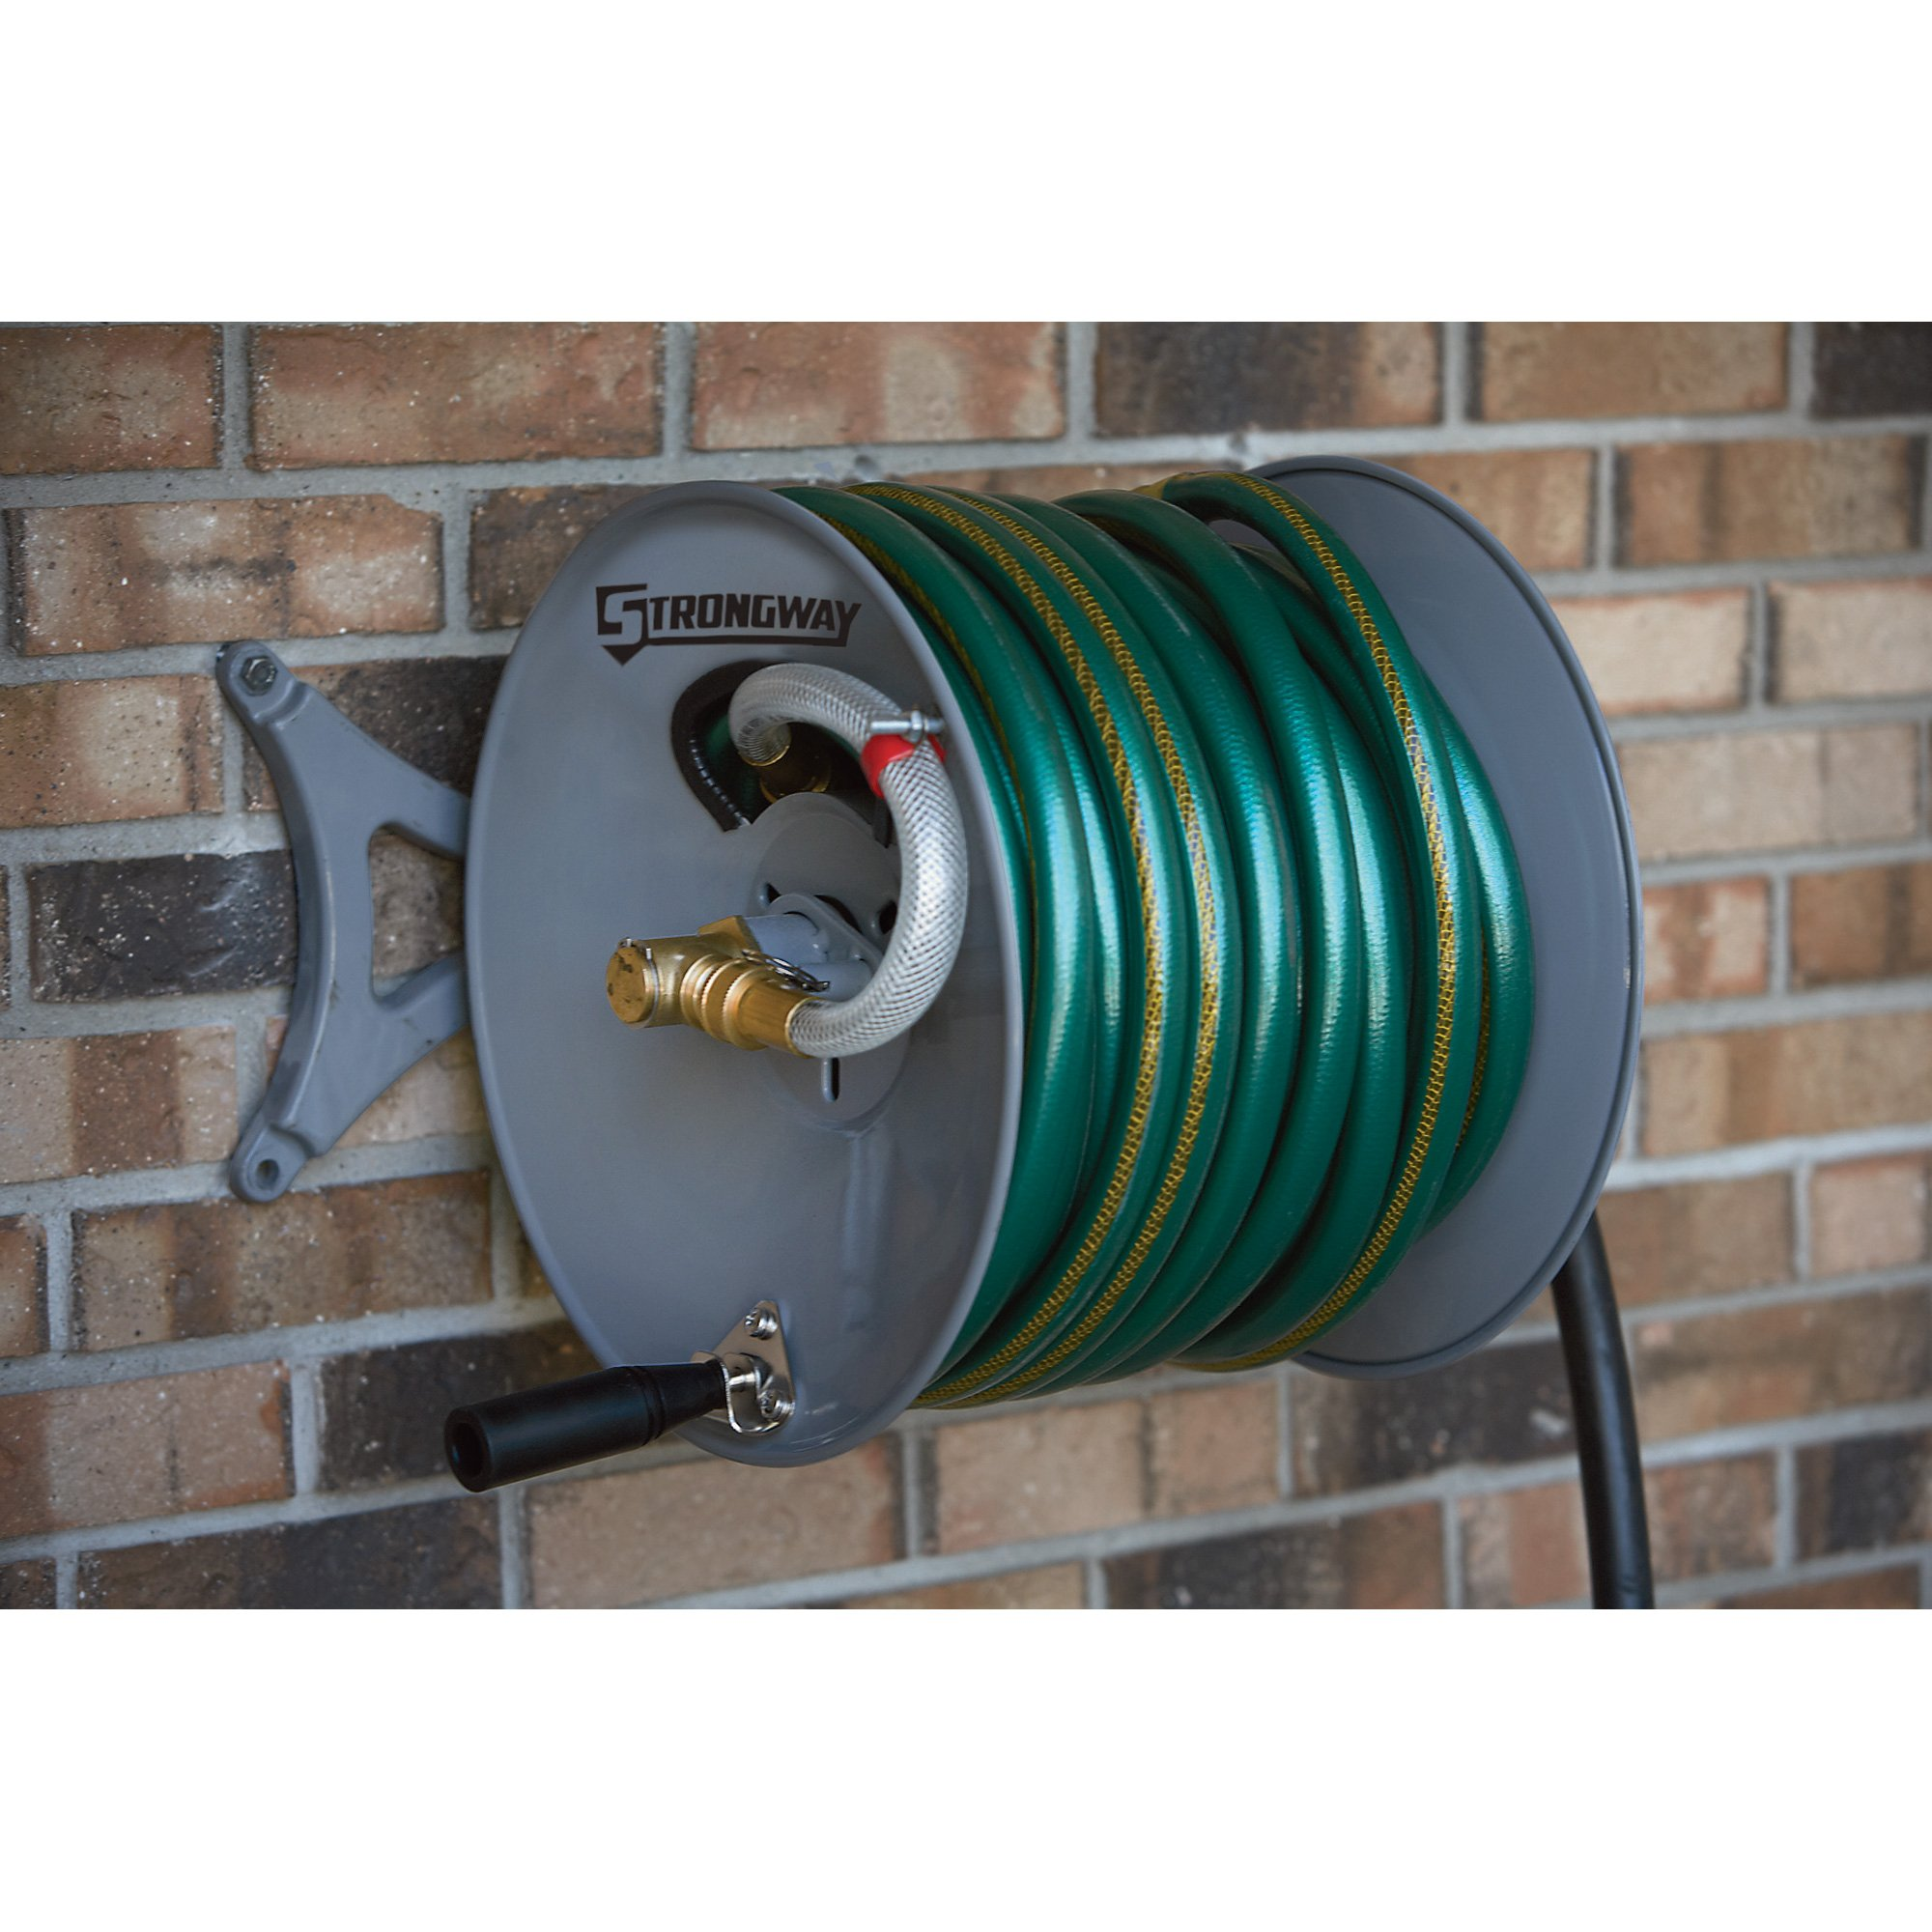 Strongway Parallel or Perpendicular Wall-Mount Garden Hose Reel - Holds 150ft. x 5/8in. Hose by Strongway